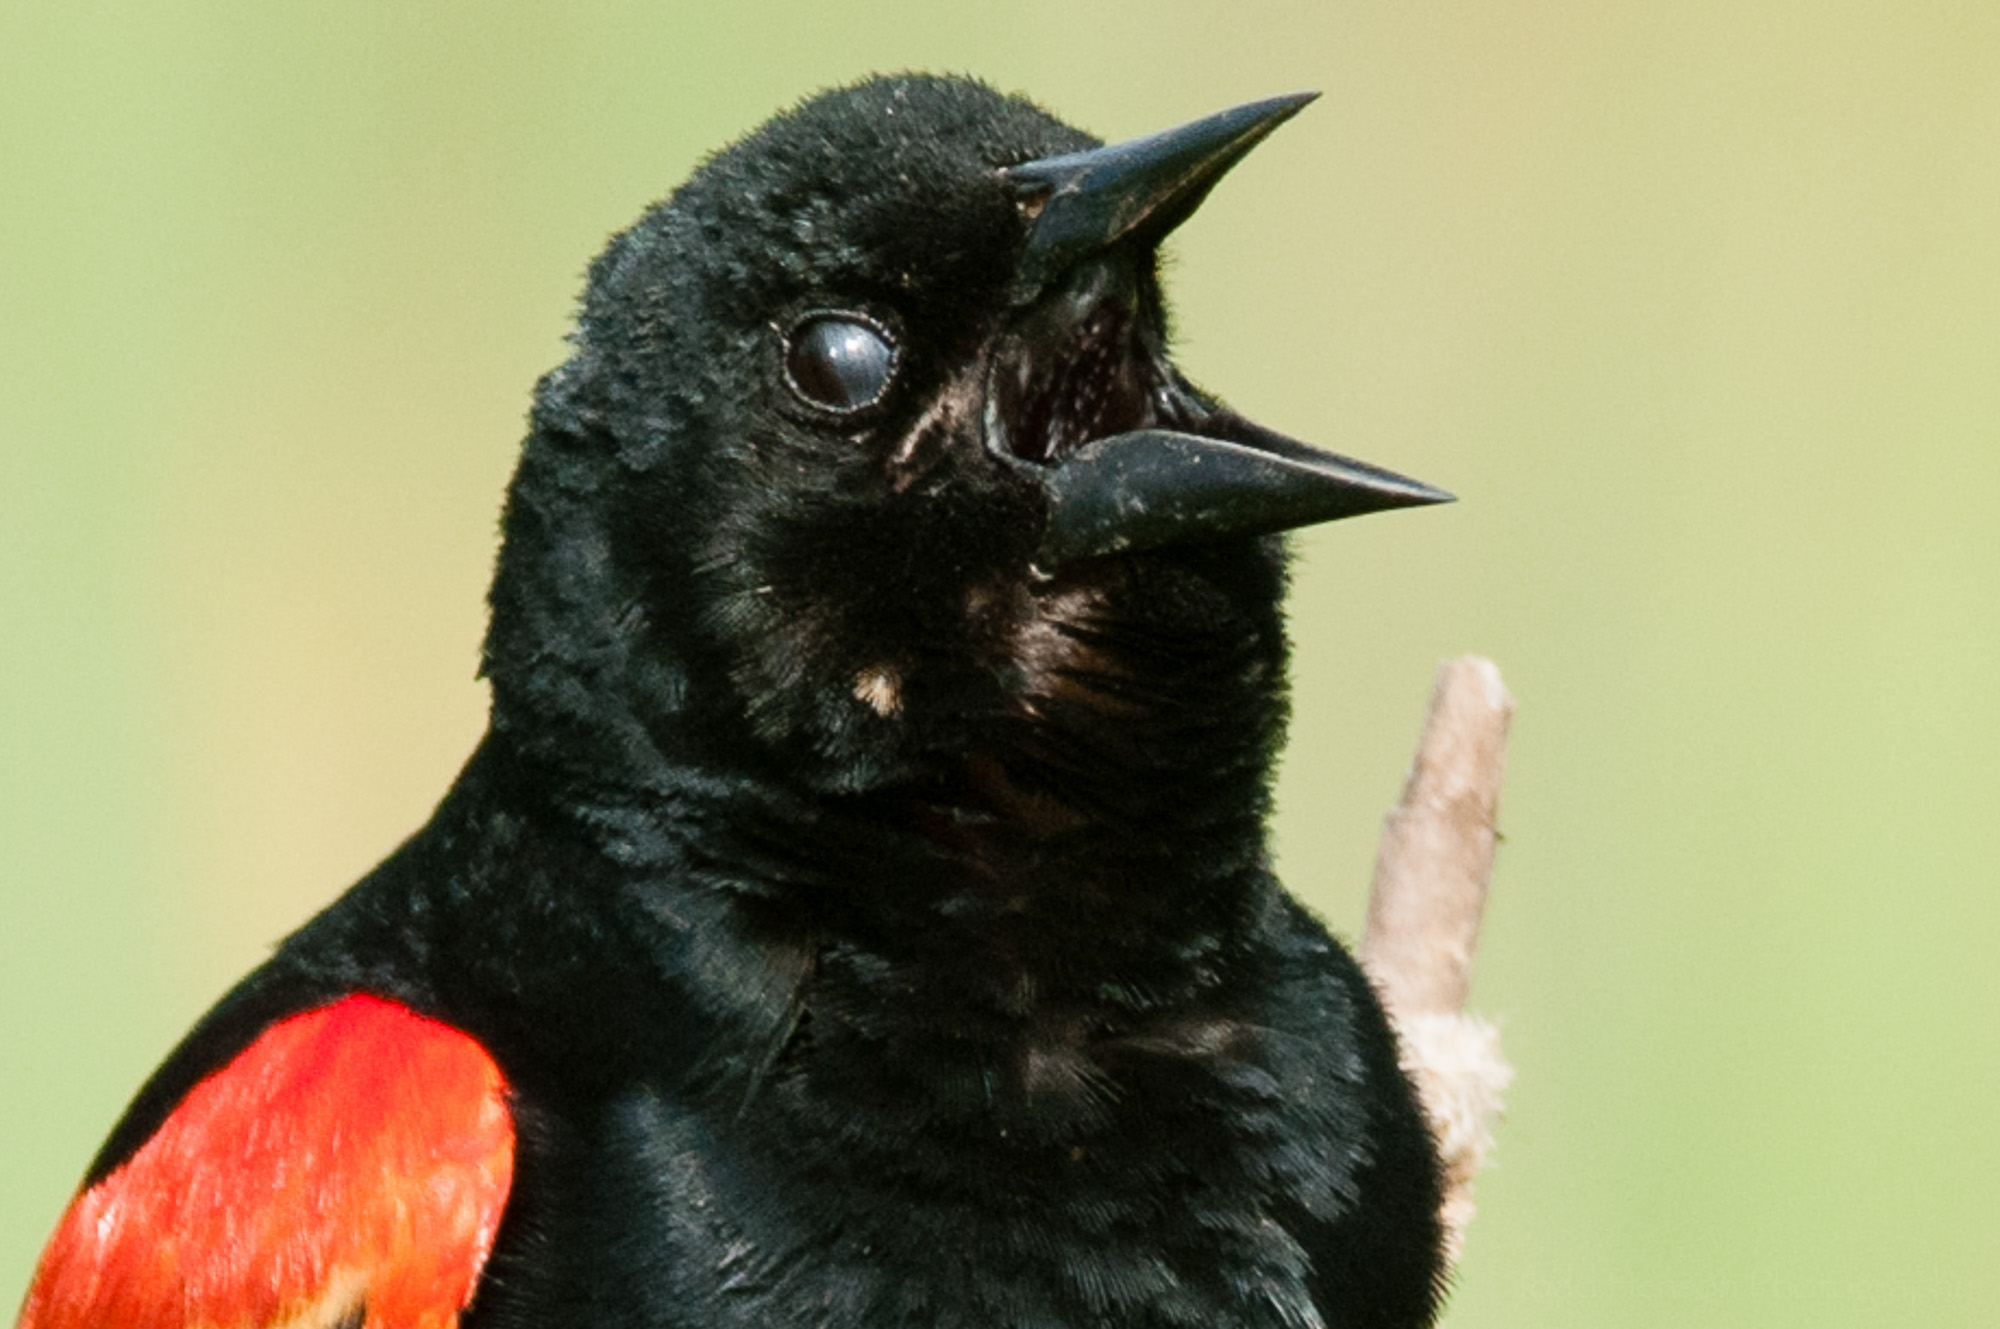 Nictitating membrane almost closed on male red-winged blackbird.